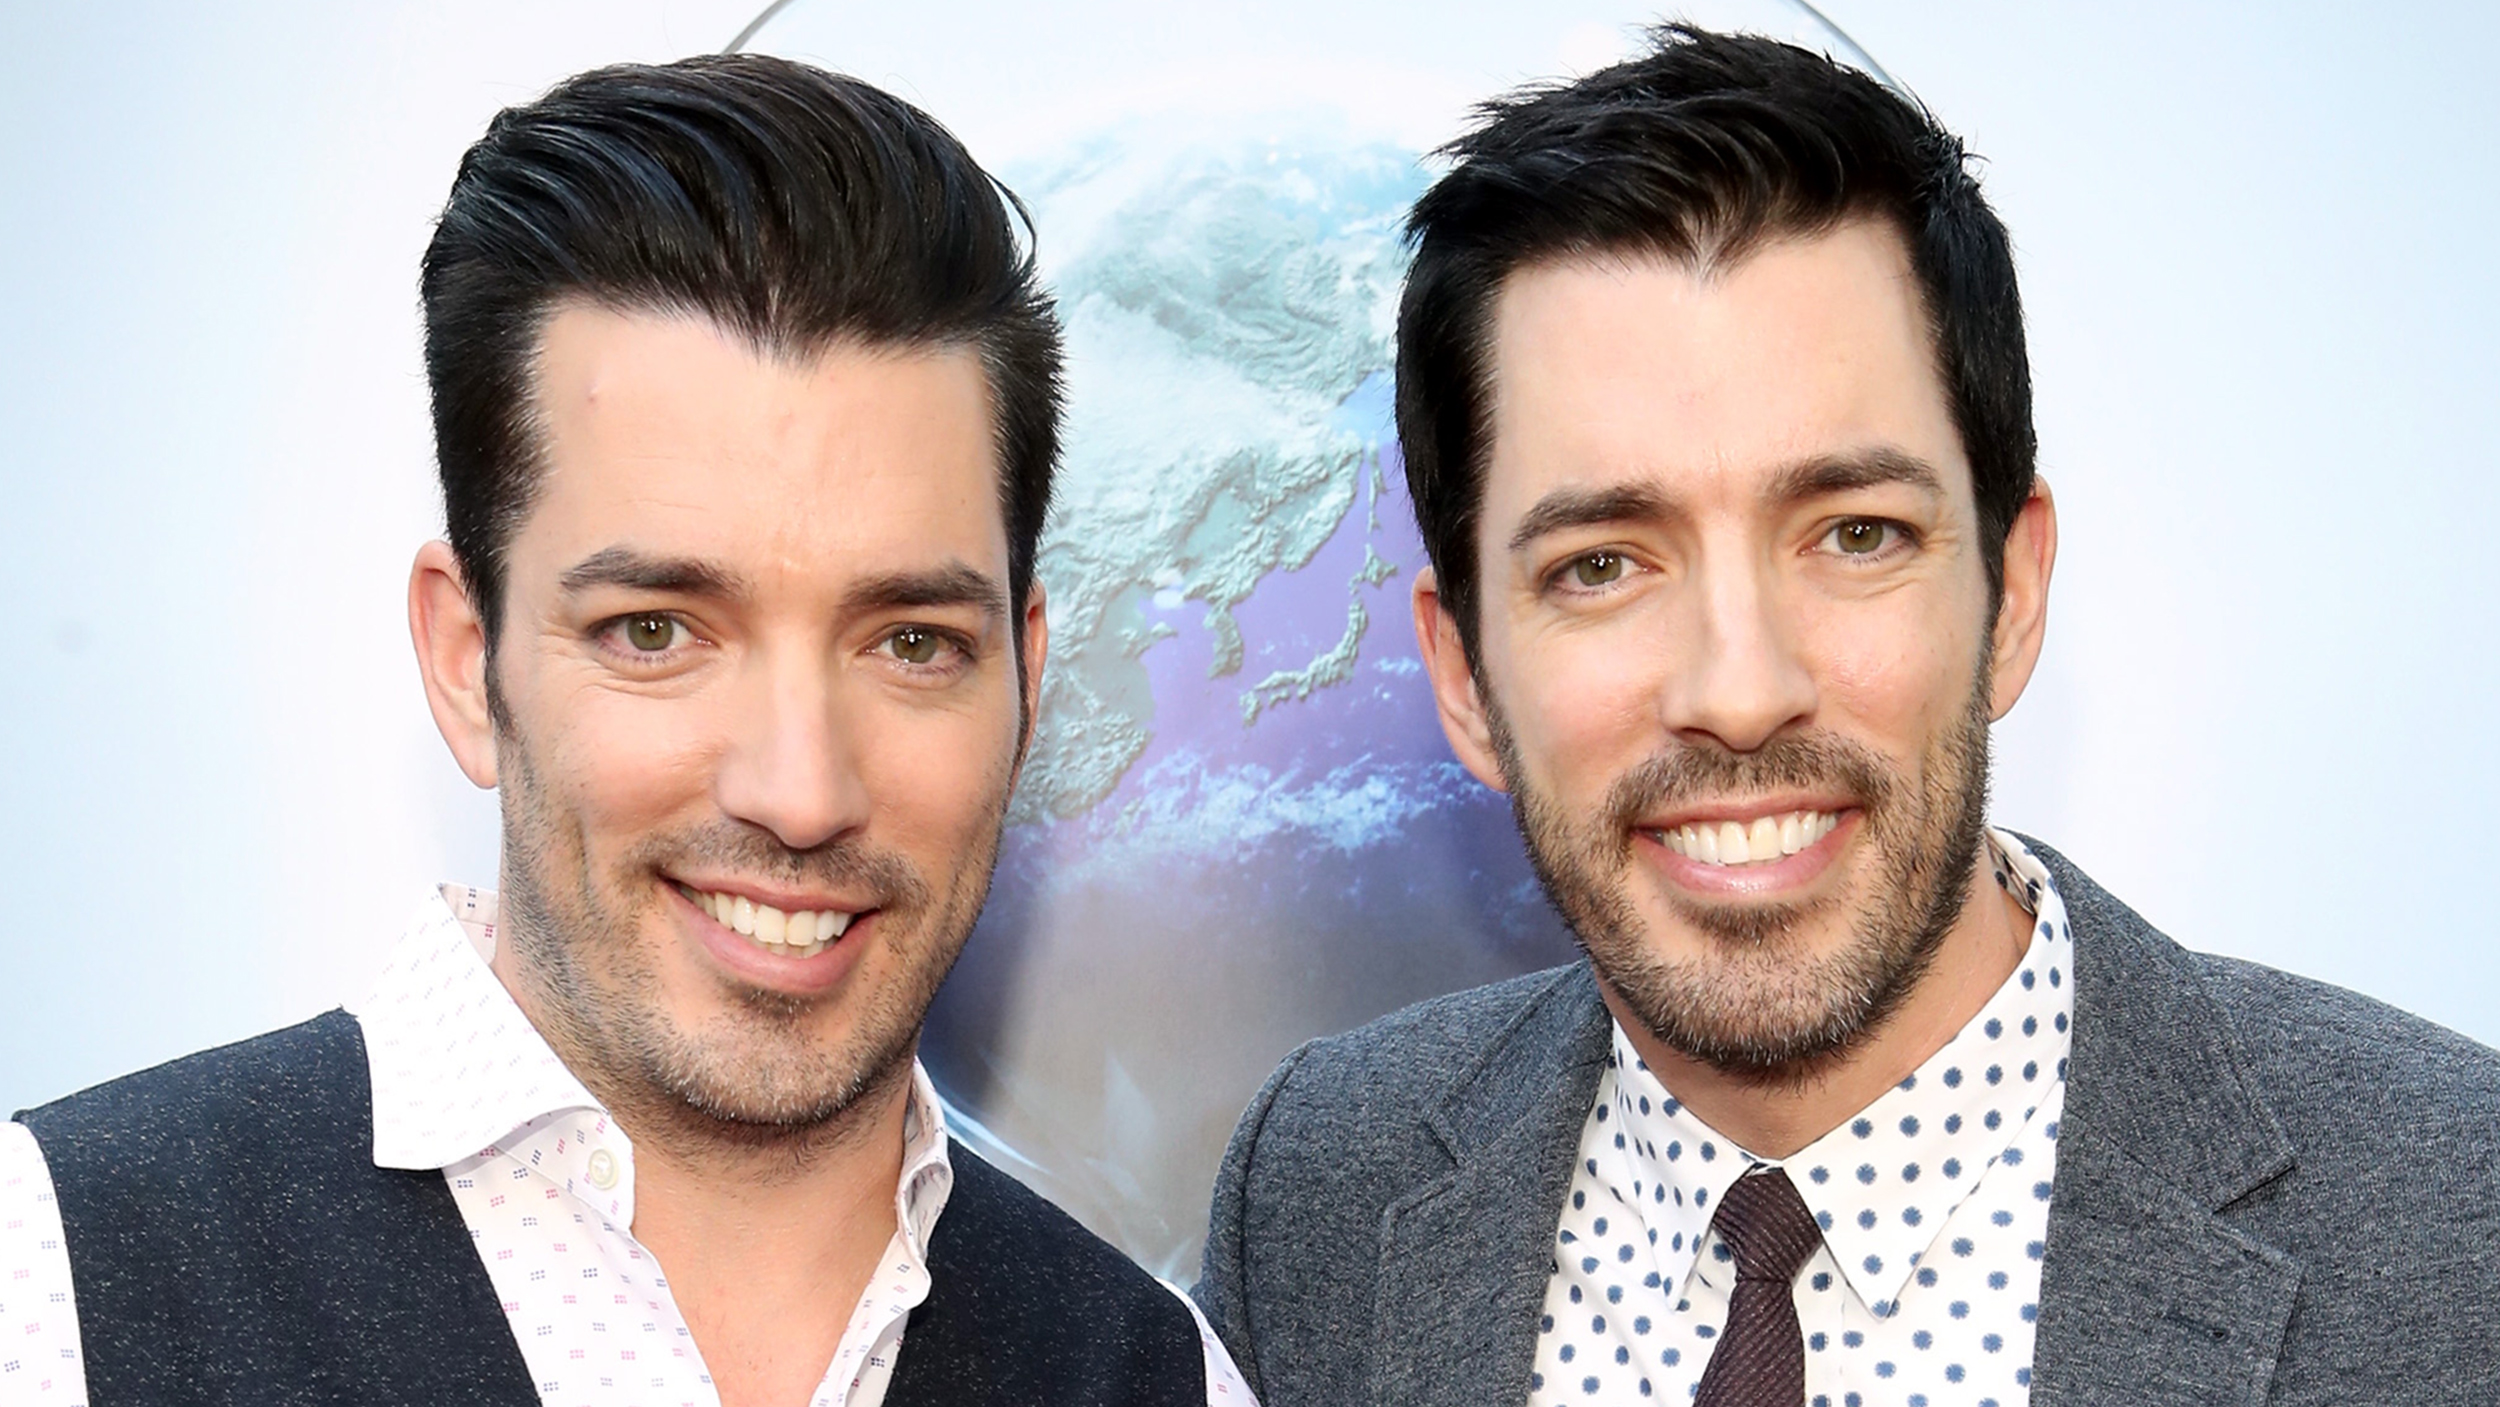 Scott living at lowe 39 s drew and jonathan scott furniture Who are the property brothers